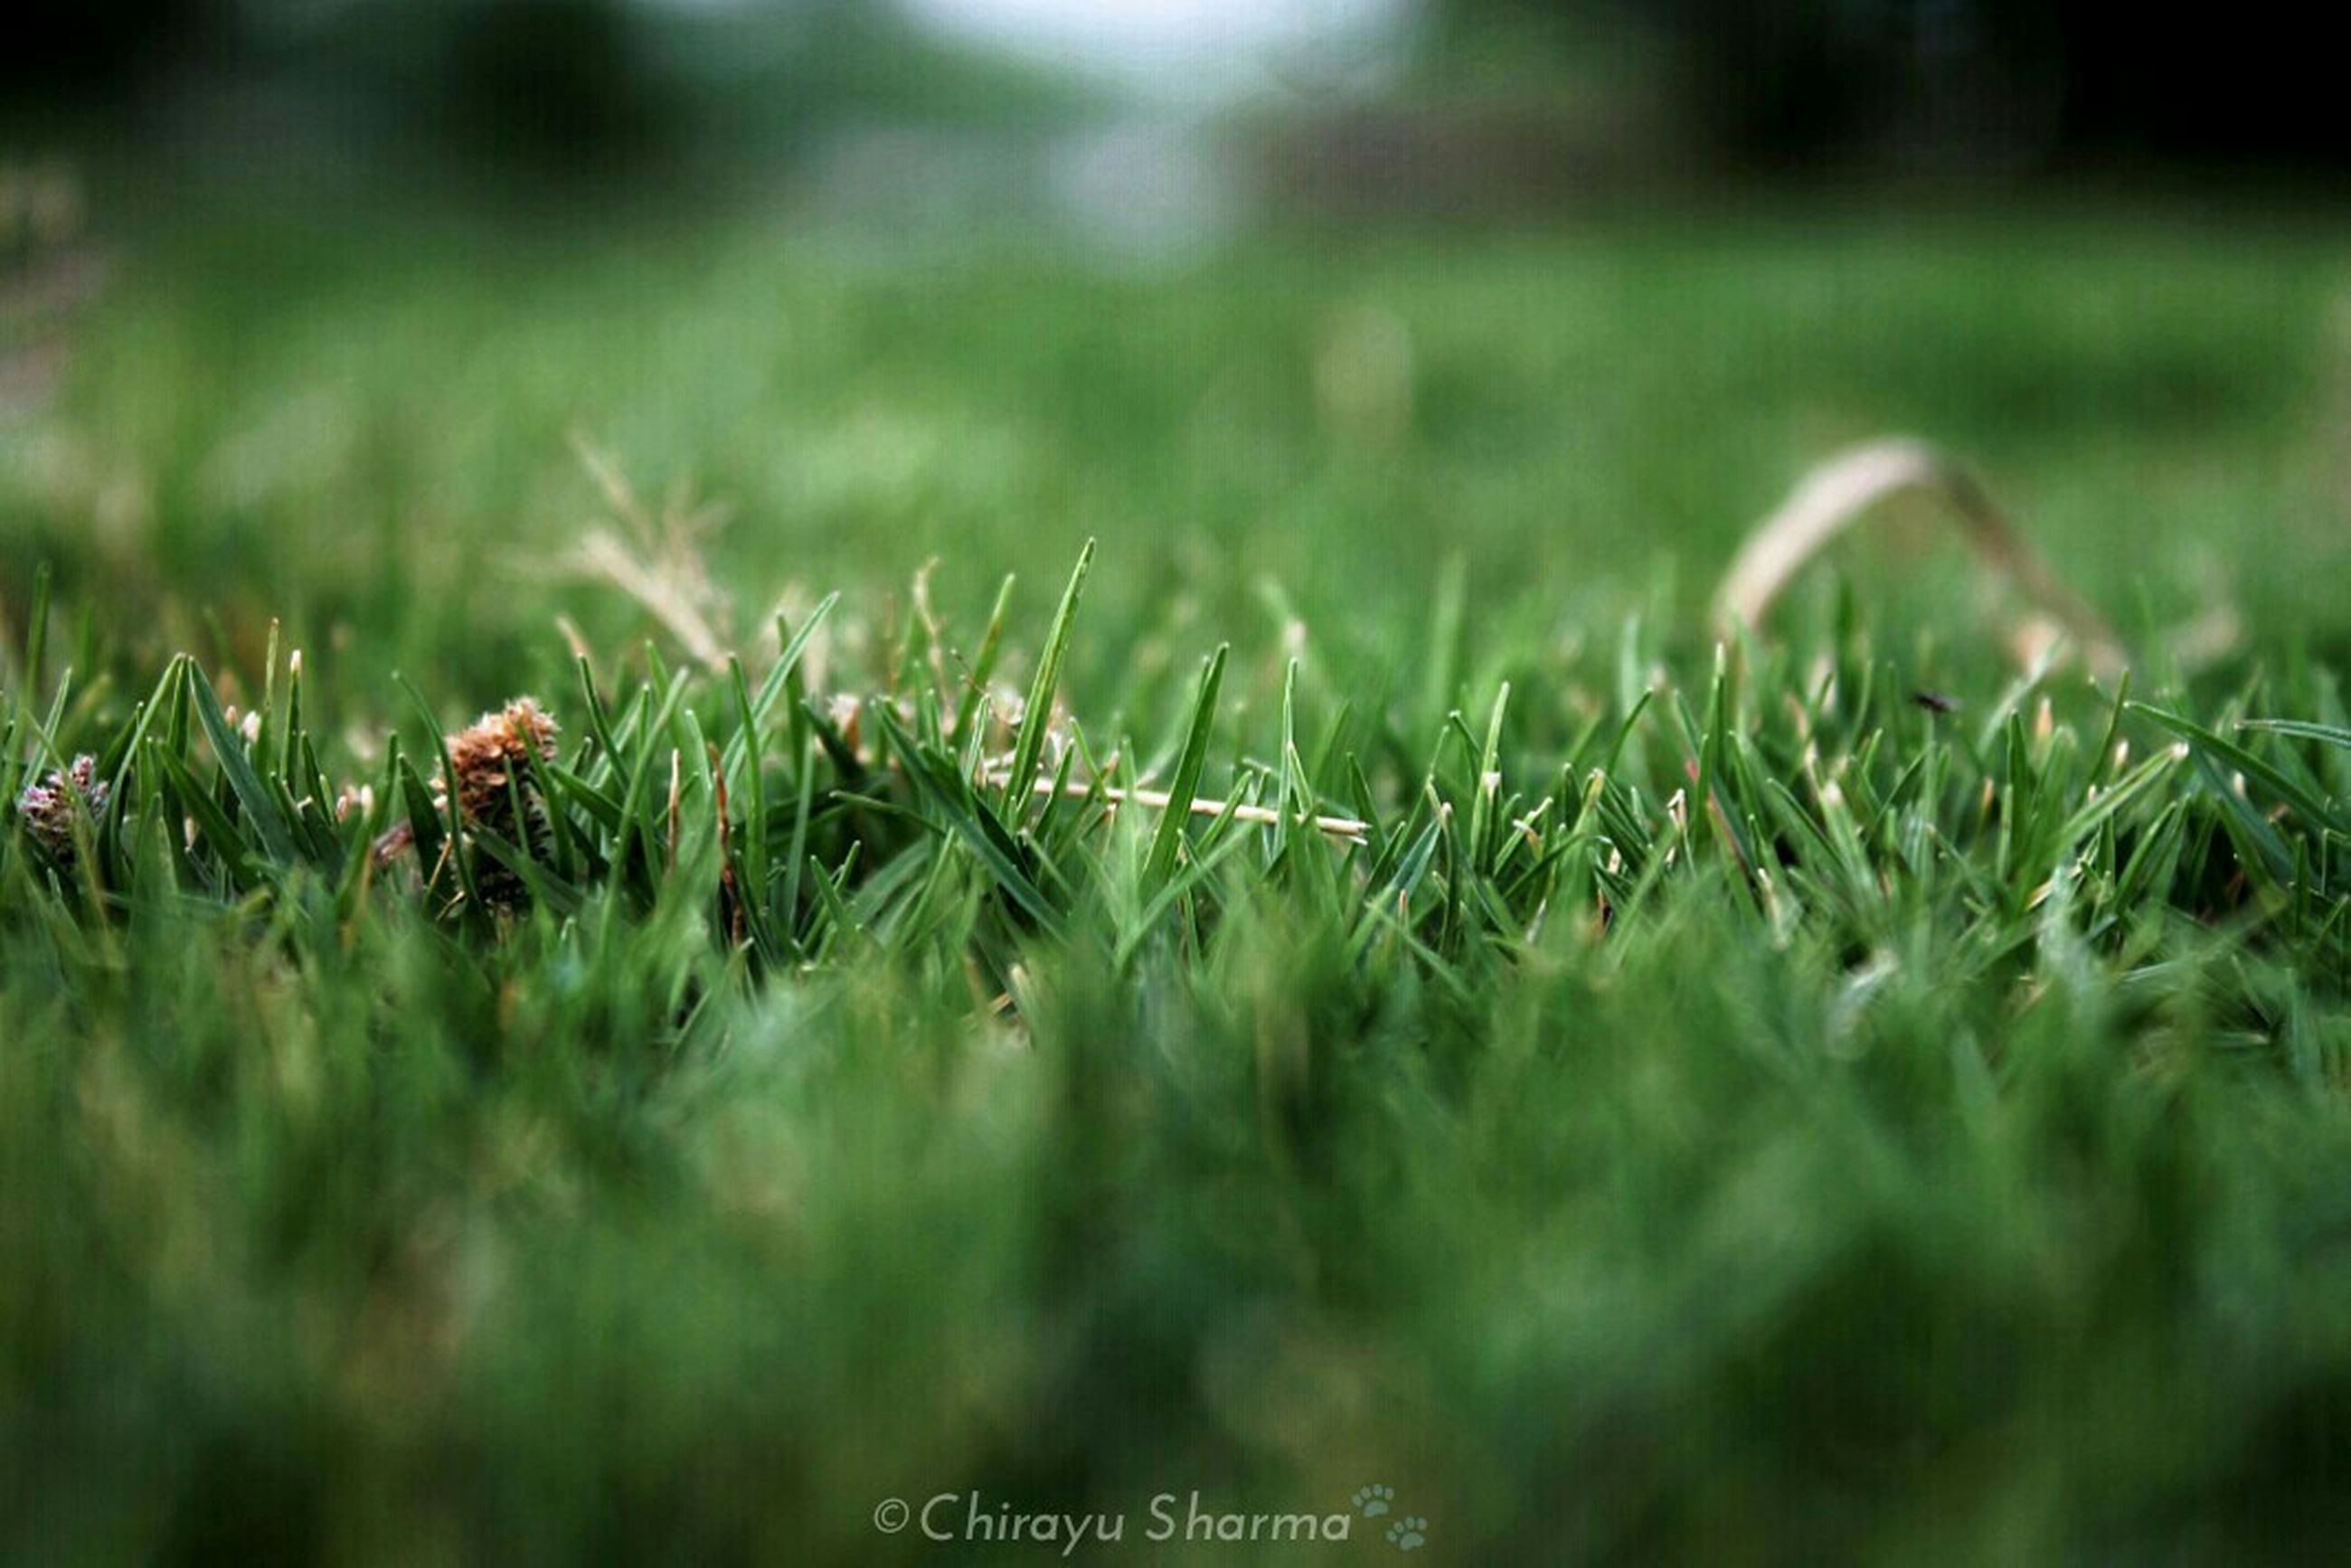 grass, field, green color, growth, selective focus, grassy, nature, plant, focus on foreground, beauty in nature, tranquility, blade of grass, close-up, green, day, landscape, outdoors, no people, meadow, surface level